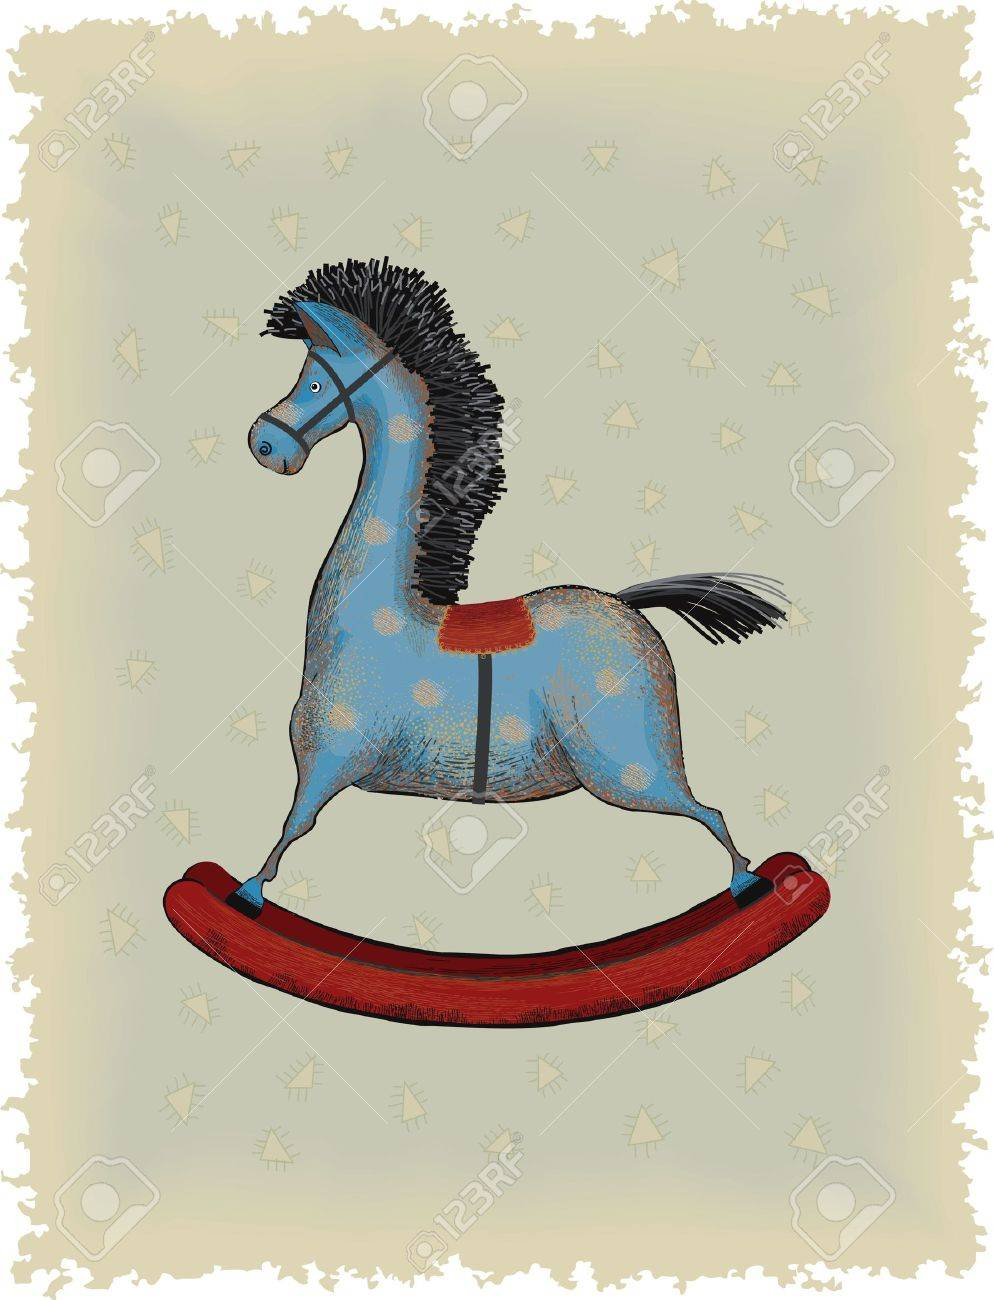 Vintage Blue Wooden Rocking Horse Royalty Free Cliparts Vectors And Stock Illustration Image 21743856